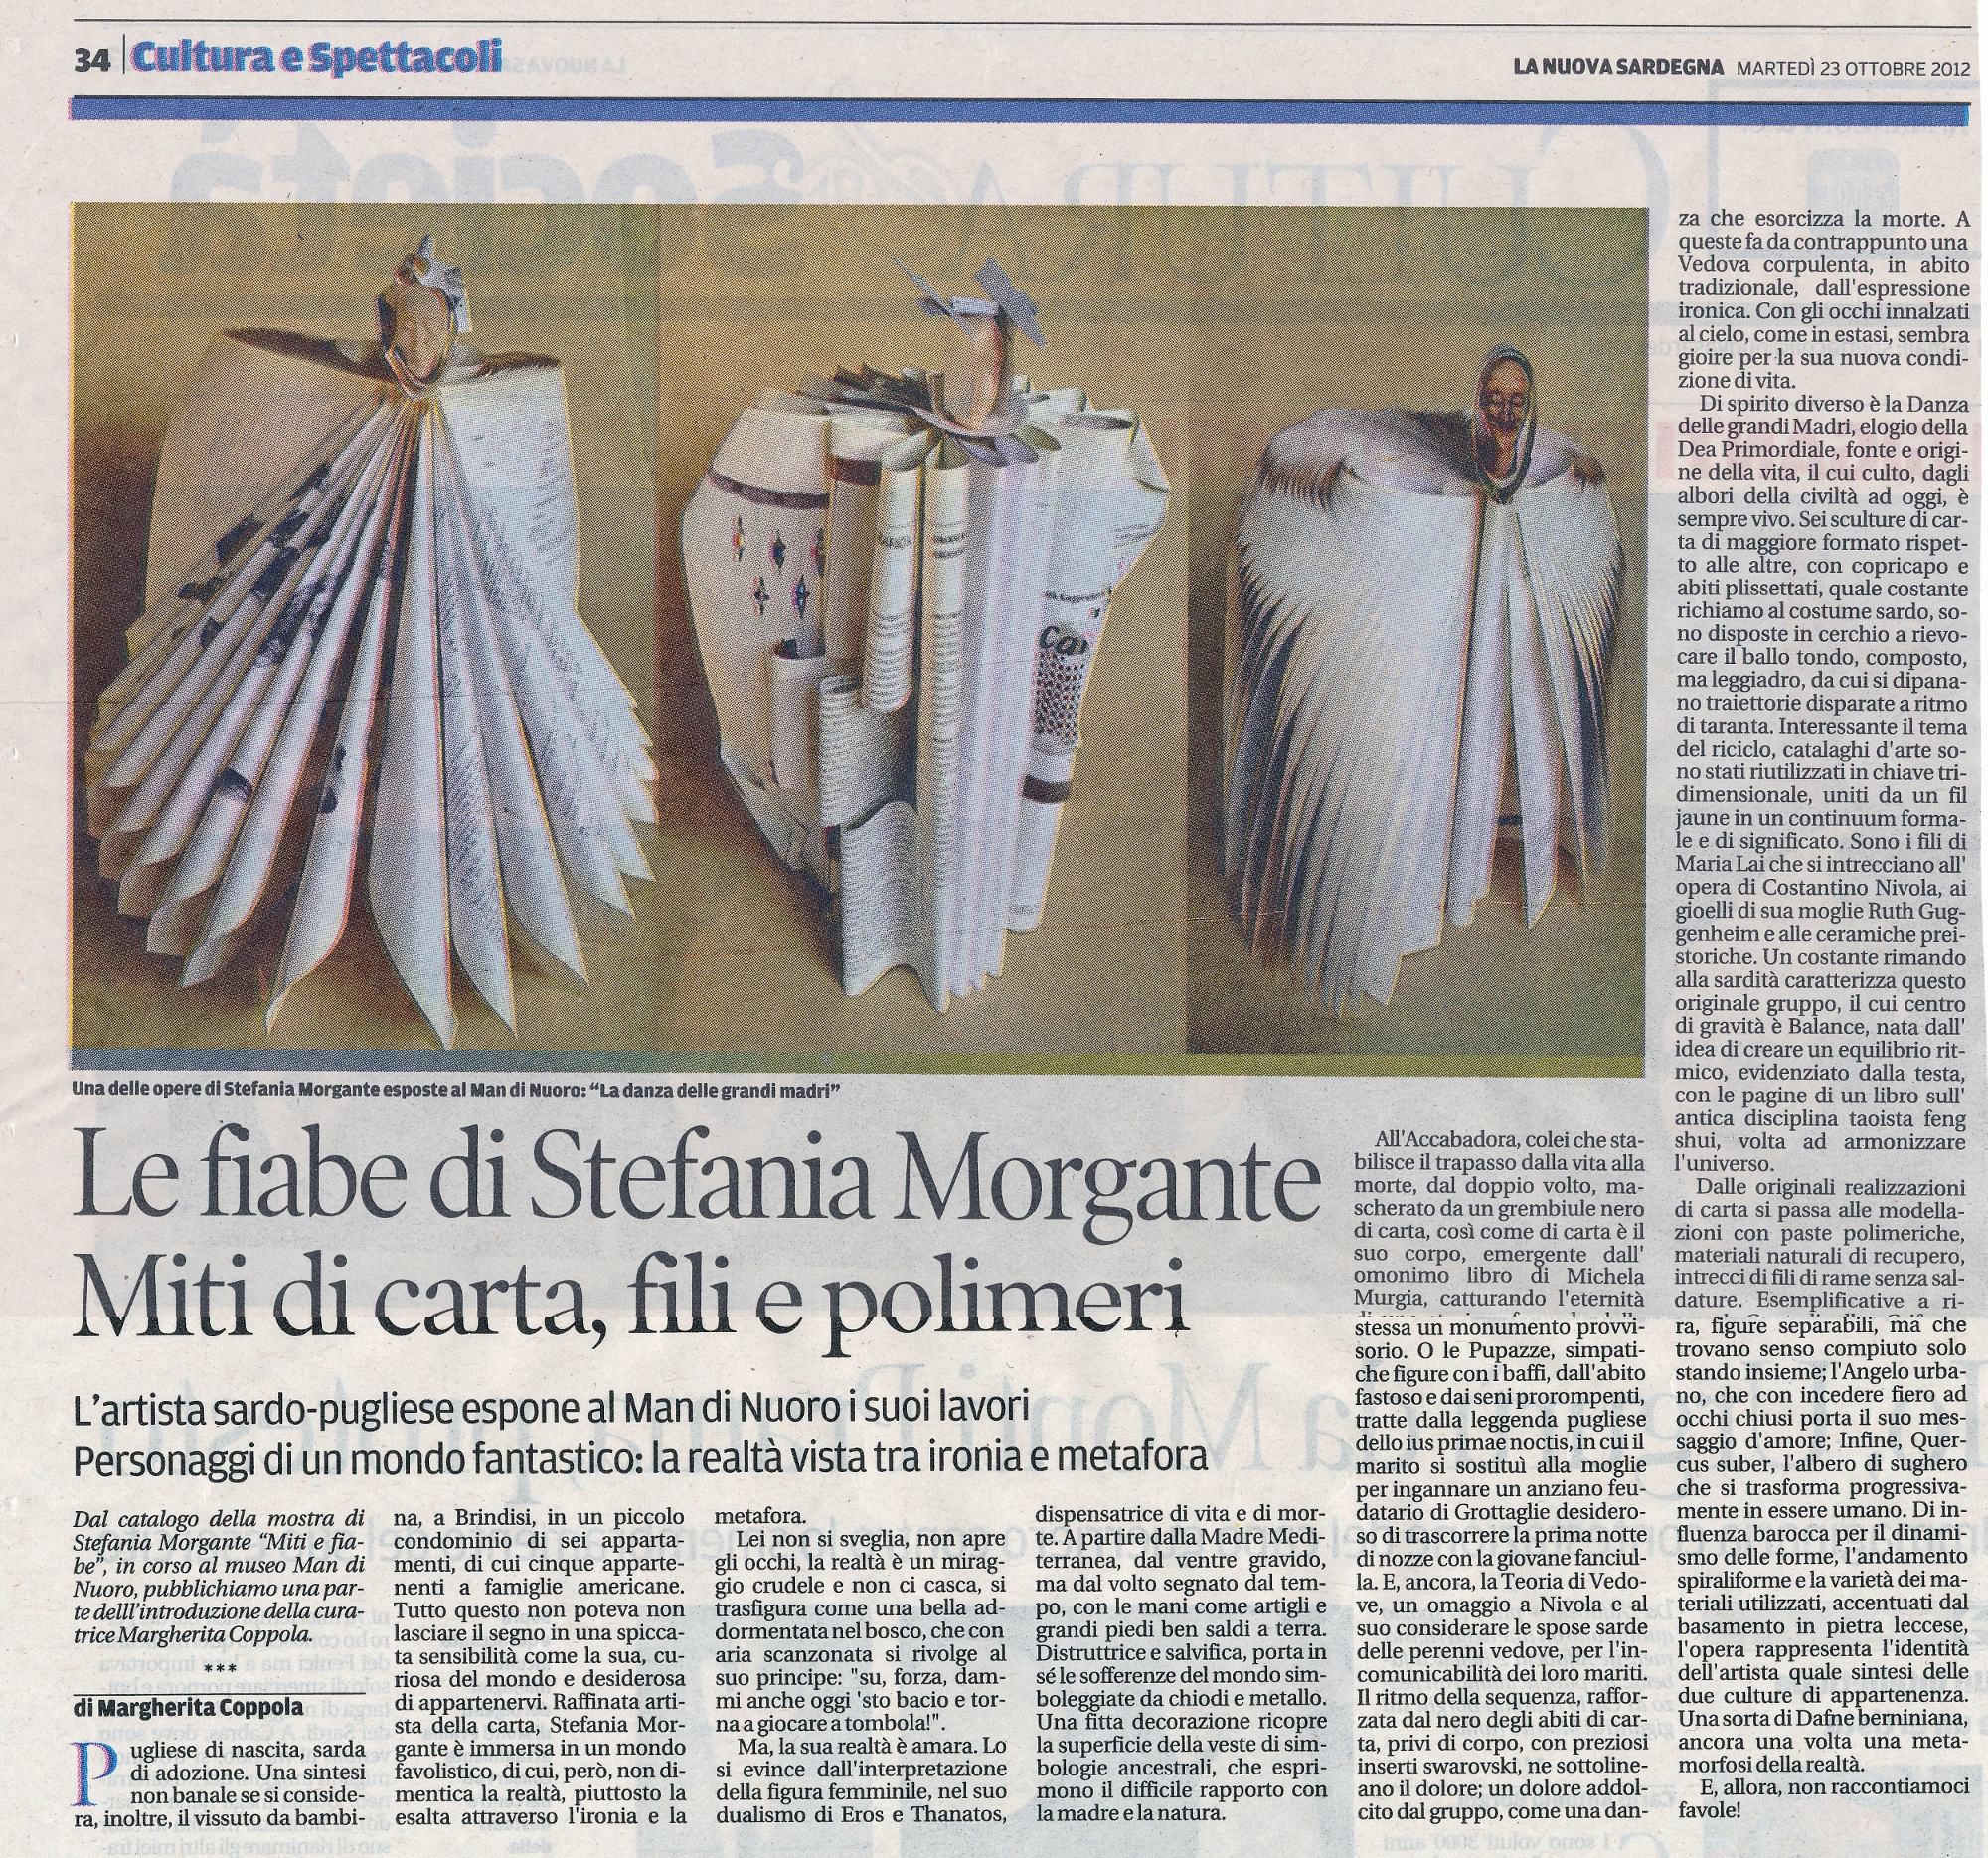 Press-NewsPaper La Nuova Sardegna Myths Fairytales